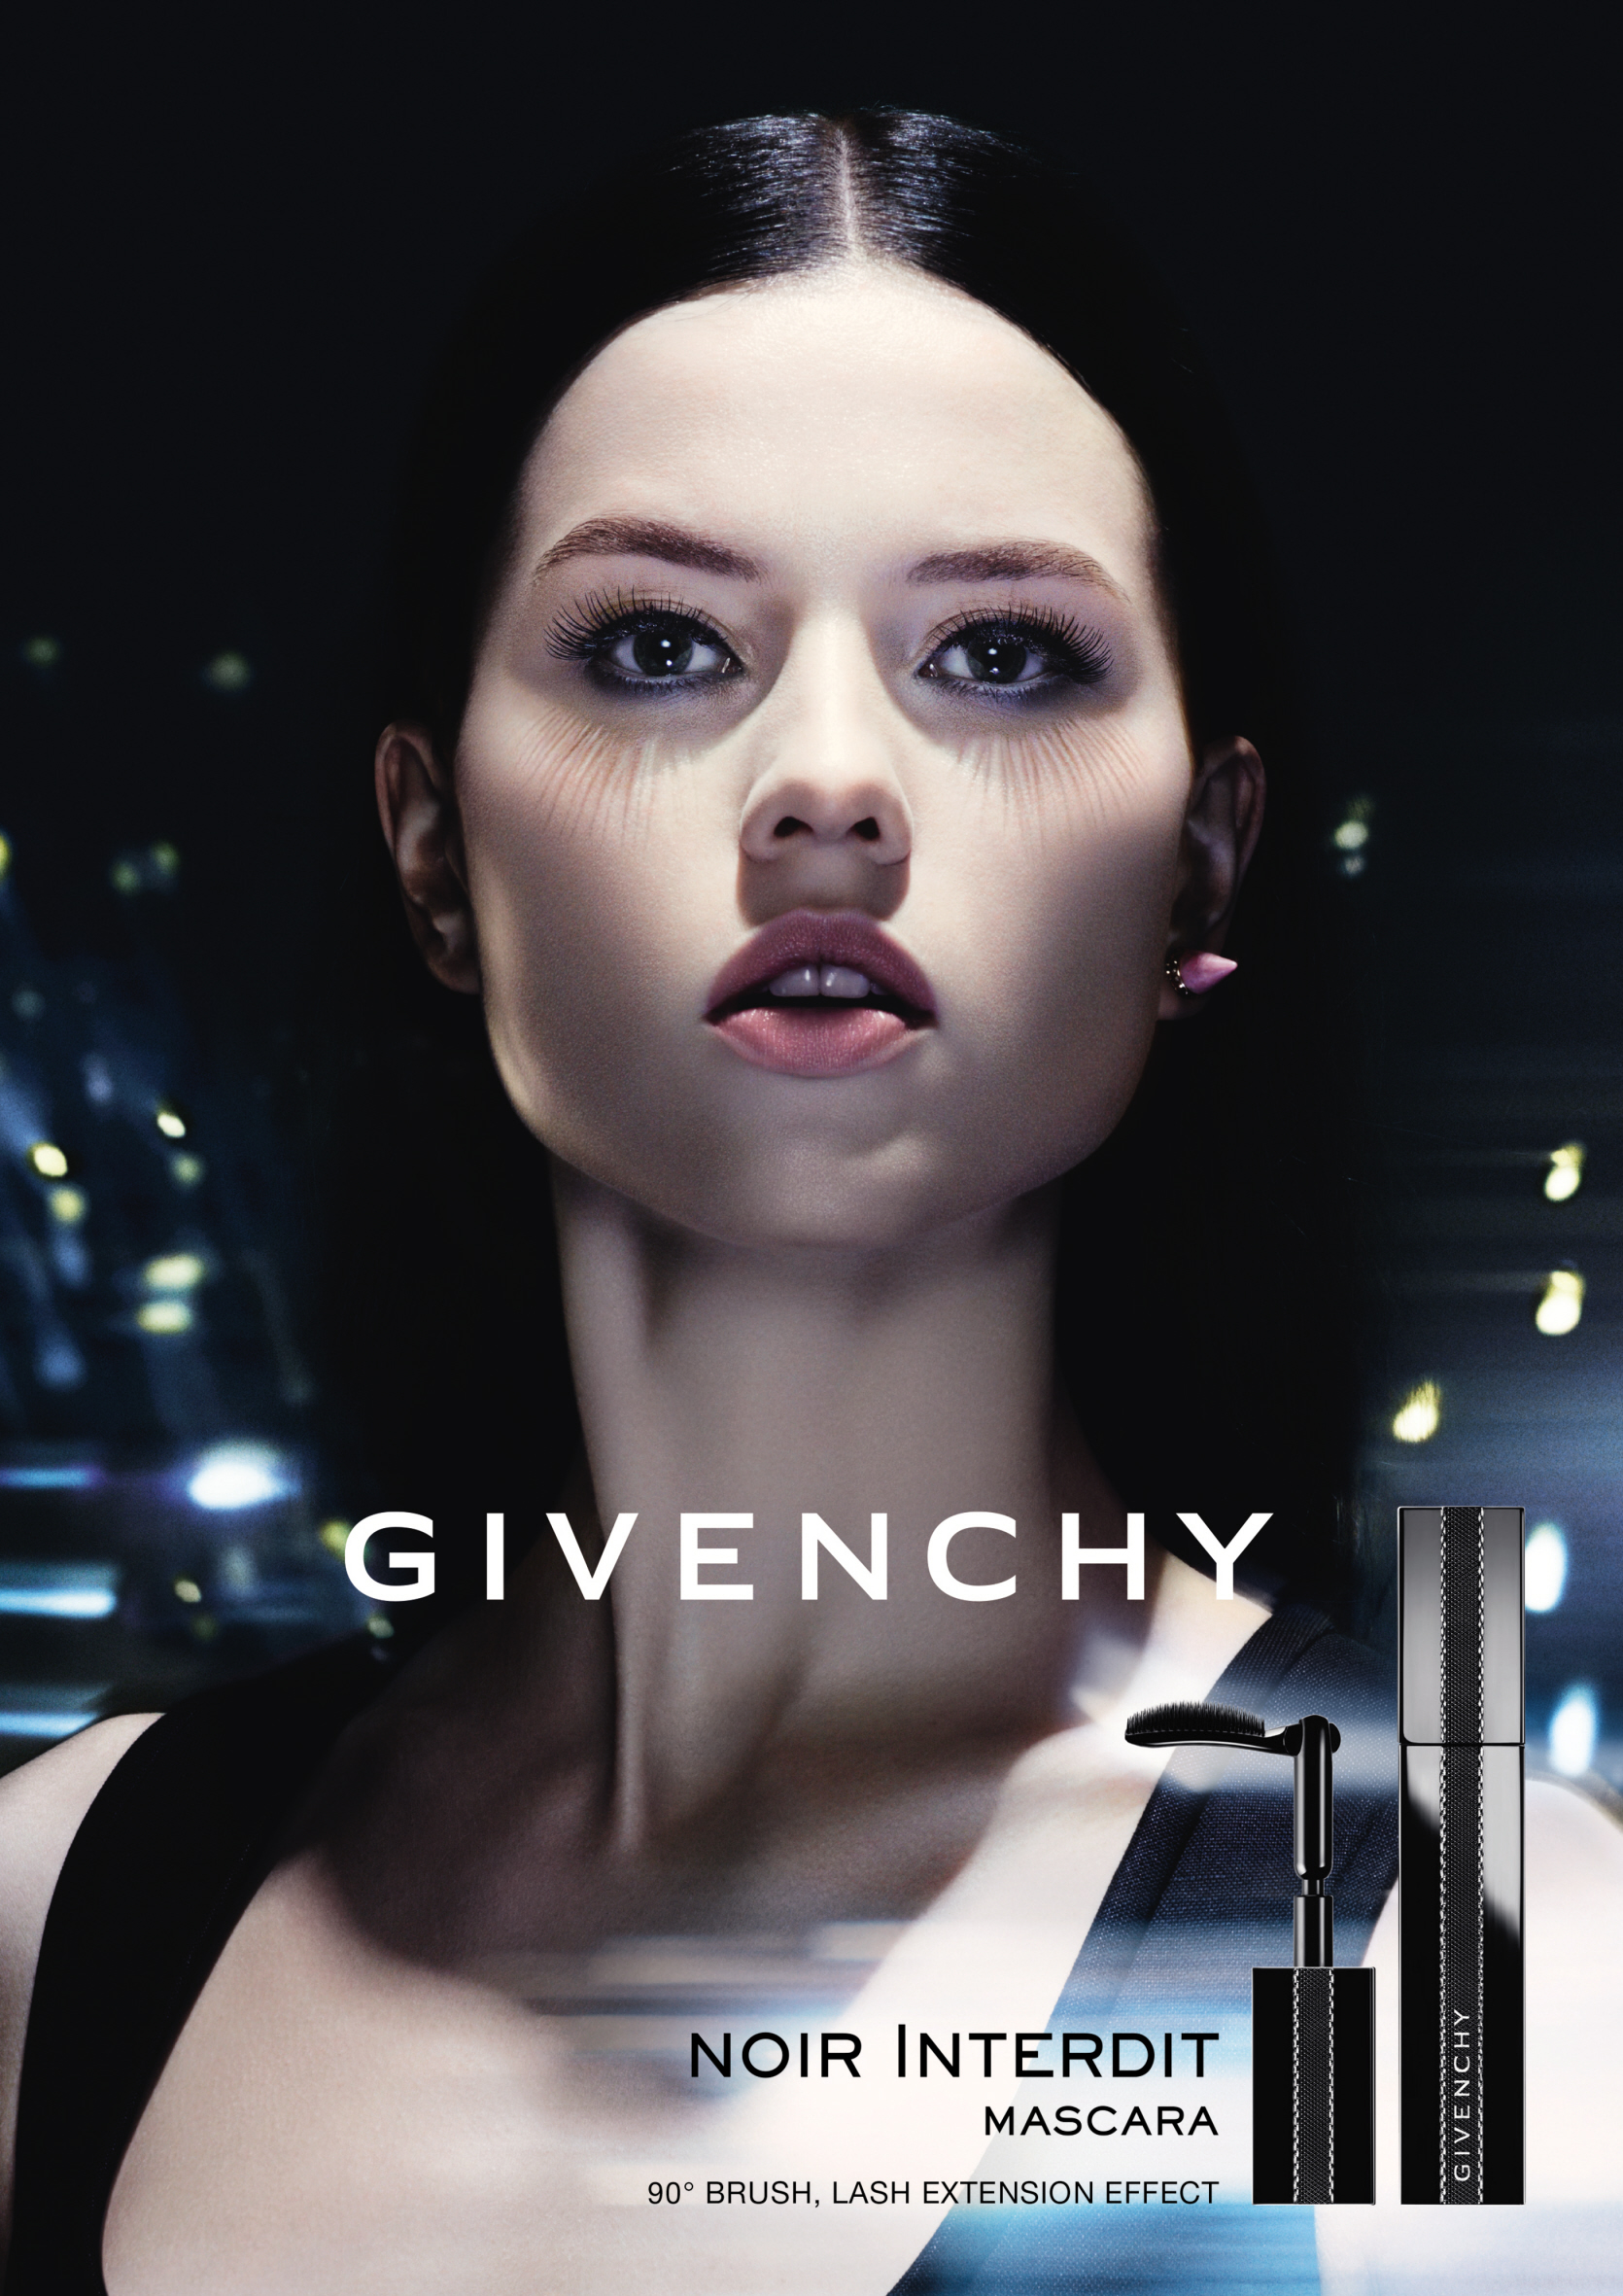 Givenchy_Noir Interdit 17